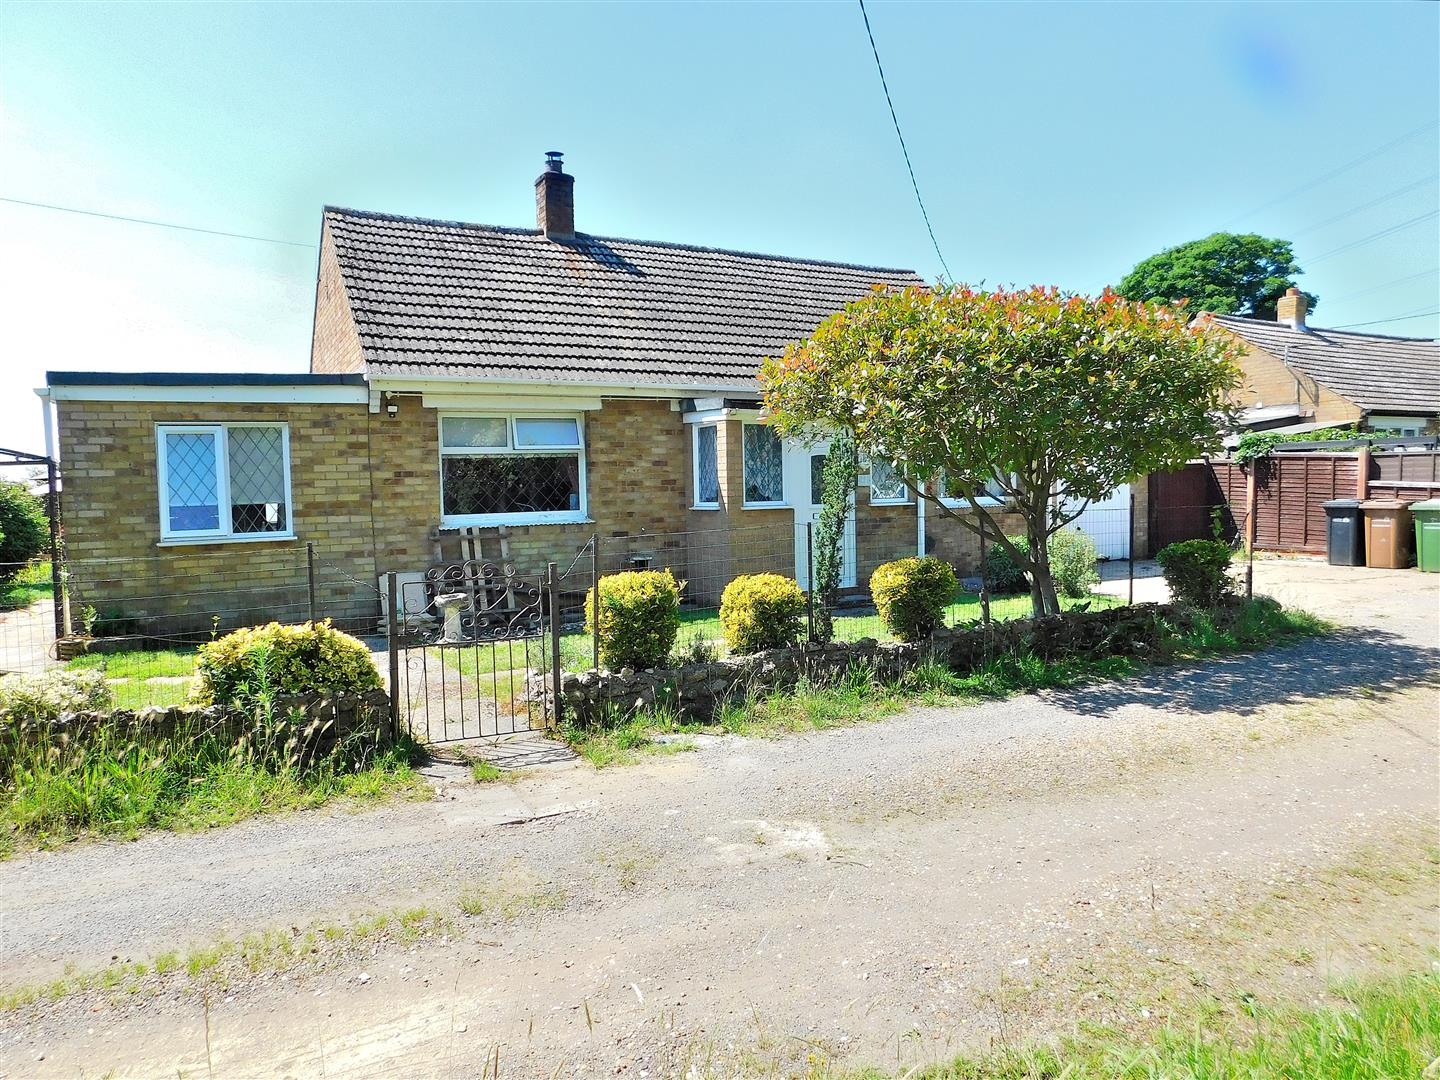 3 bed detached bungalow for sale in King's Lynn, PE33 0BG 0